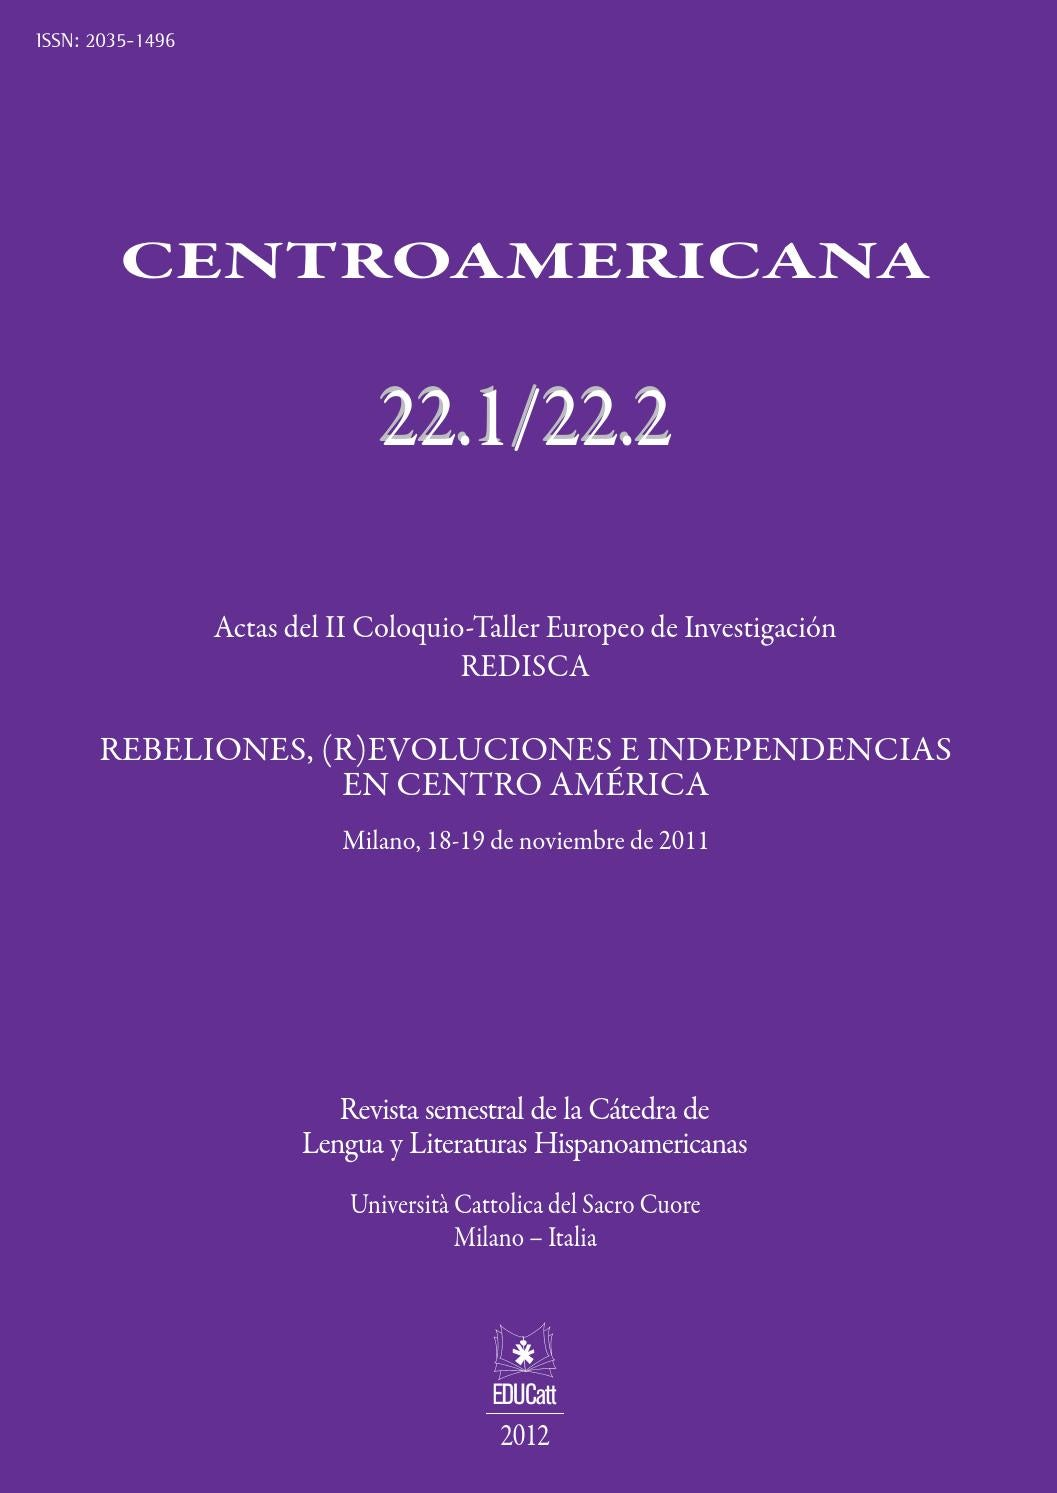 623e1b942f Centromericana 22/2012 by EDUCatt - issuu